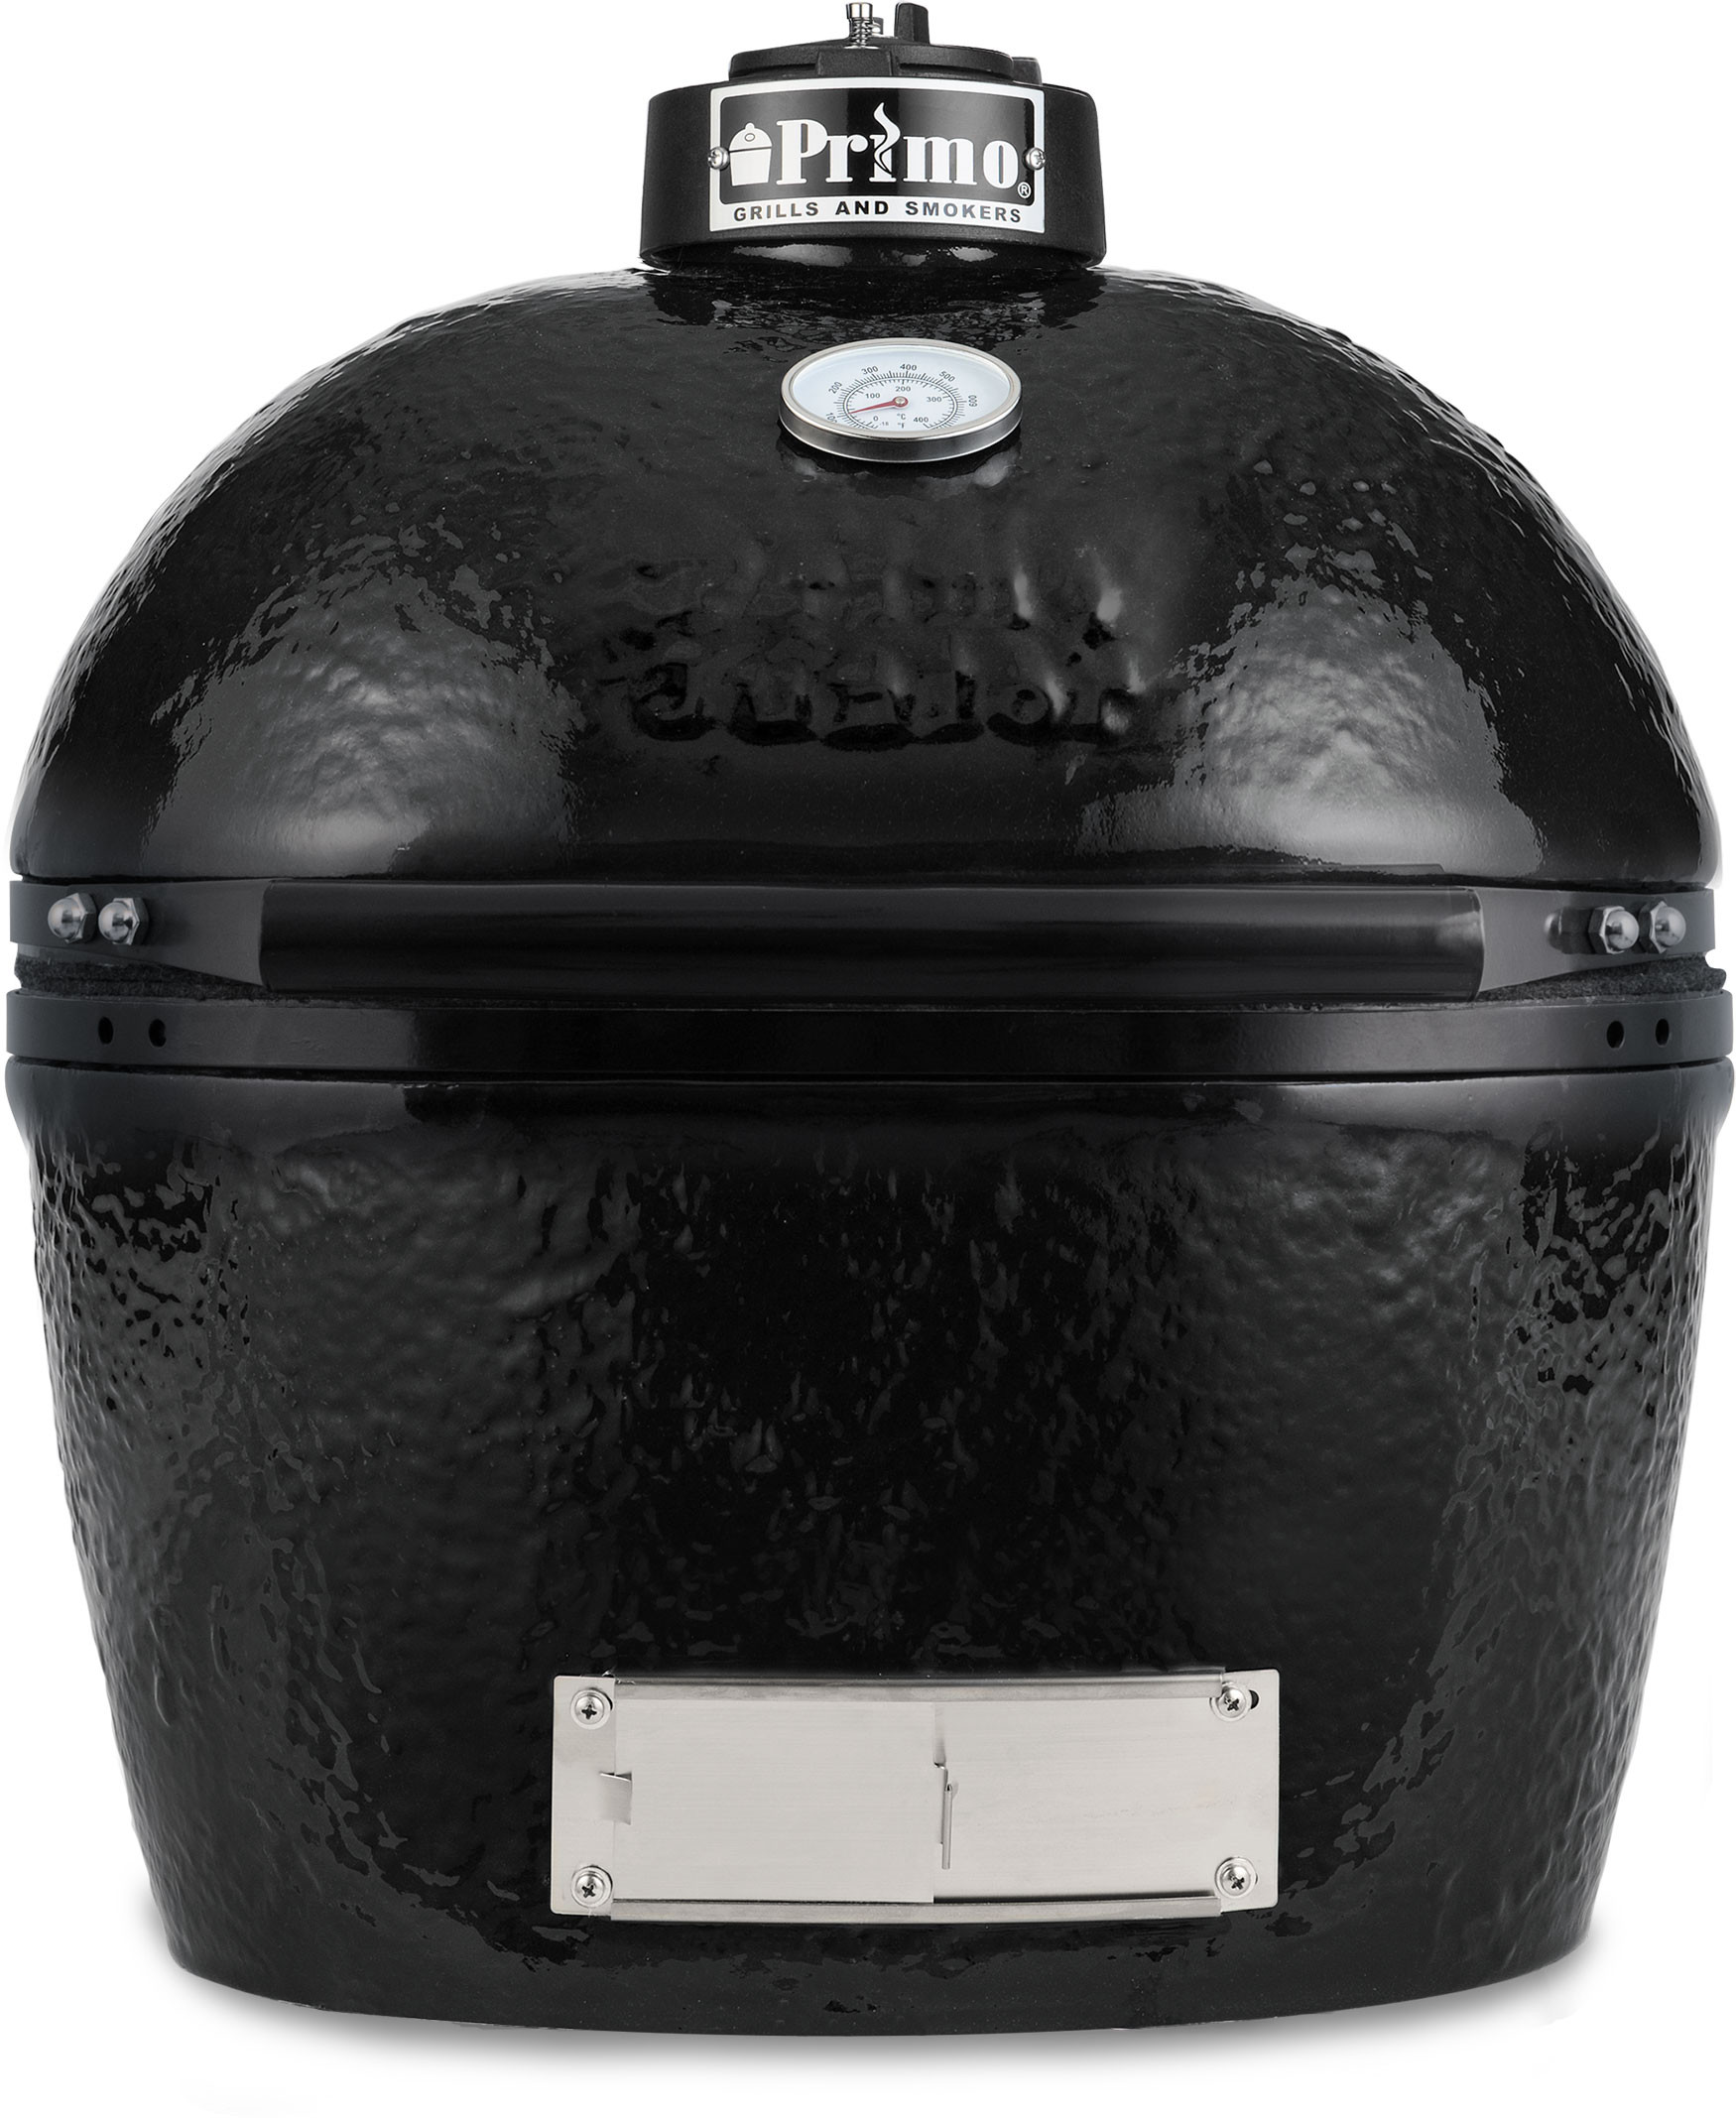 Onwijs Primo 774 21 Inch Freestanding Ceramic Kamado Grill with 360 sq LS-61